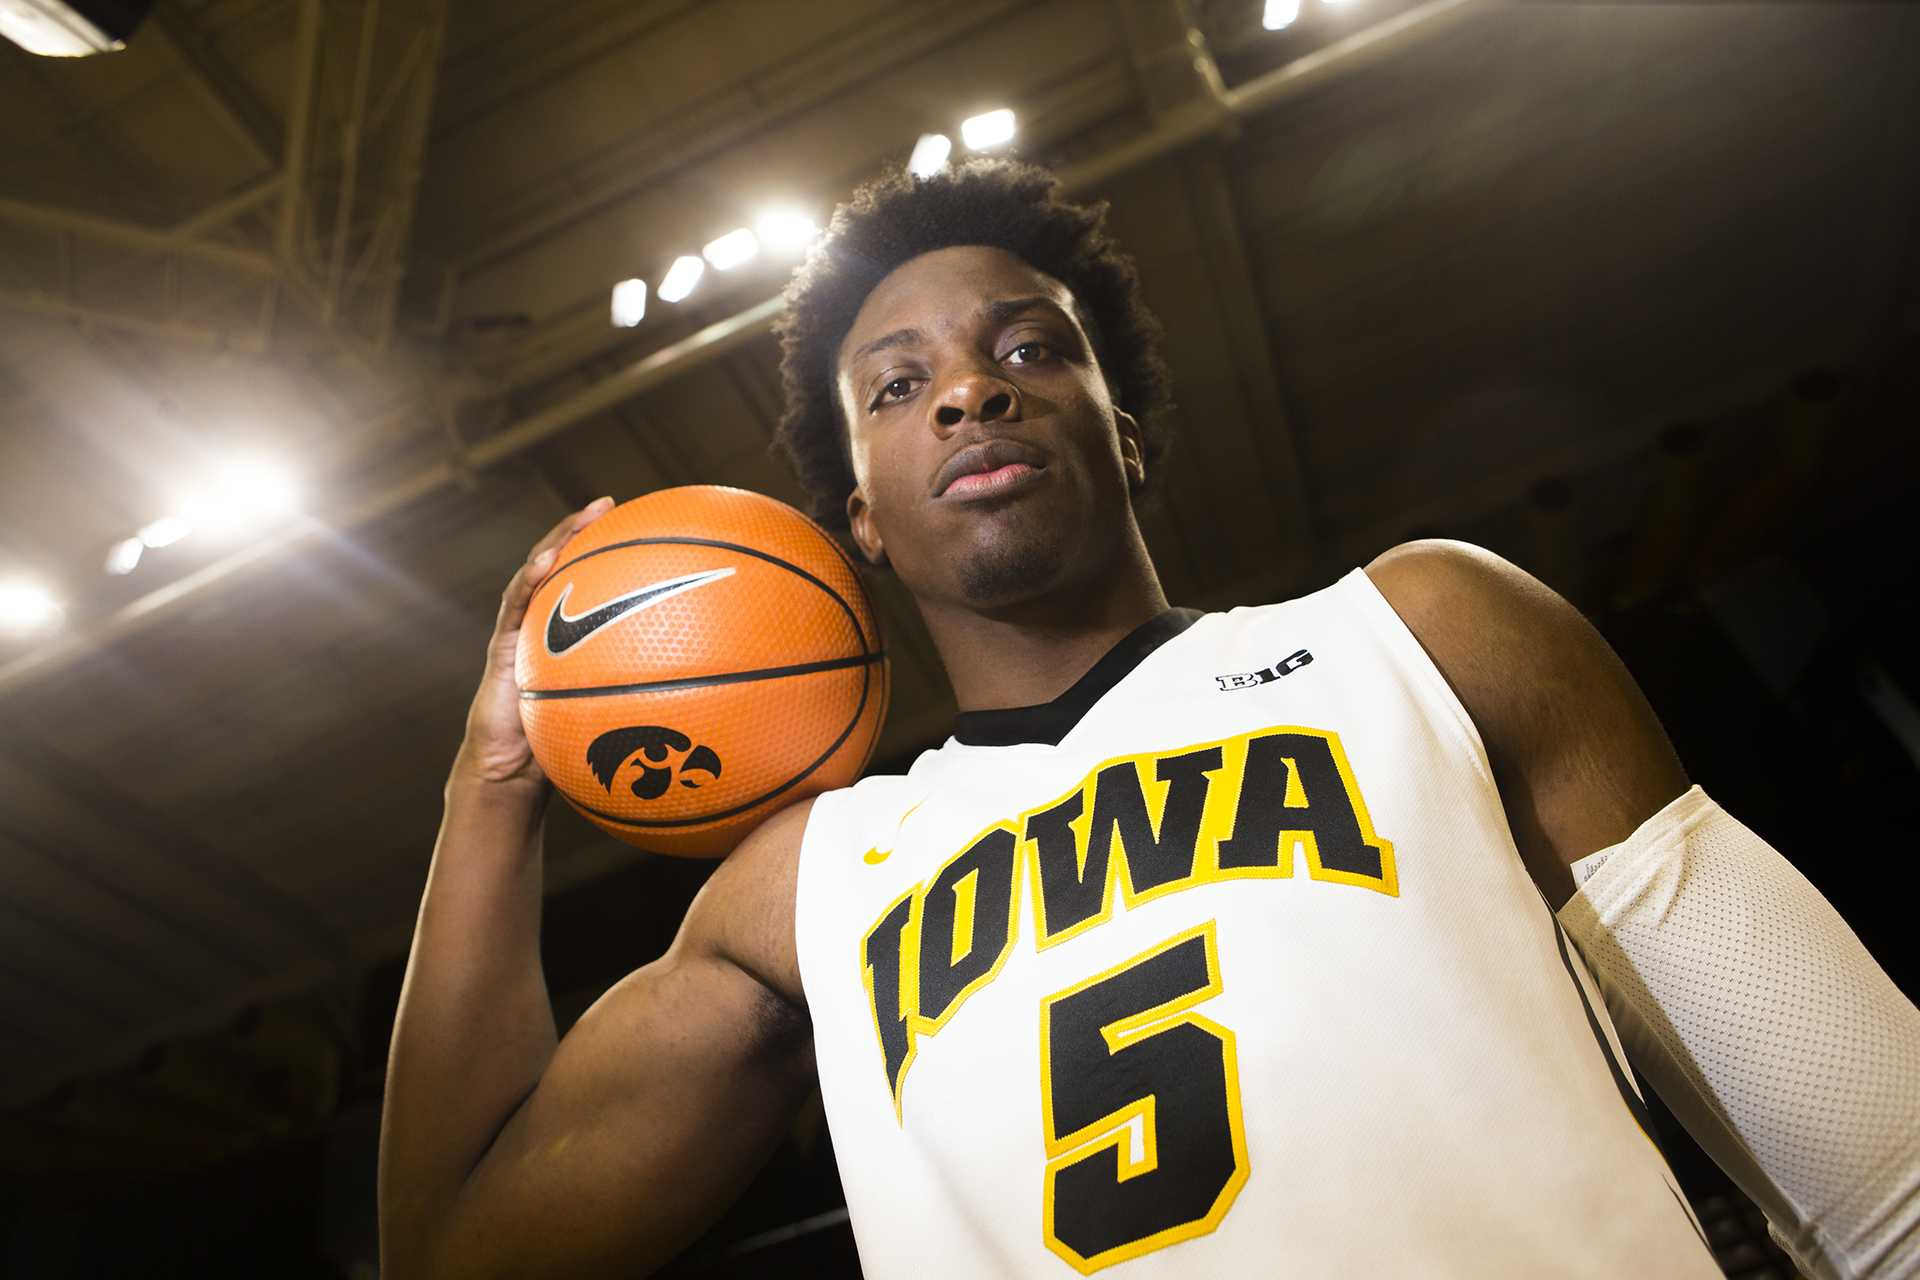 Iowa forward Tyler Cook poses for a portrait during men's basketball media day in Carver-Hawkeye Arena on Monday, Oct. 16, 2017. The Hawkeyes open up their season with an exhibition game against William Jewell College on Friday, Oct. 27. at 7 p.m. in Carver. (Joseph Cress/The Daily Iowan)